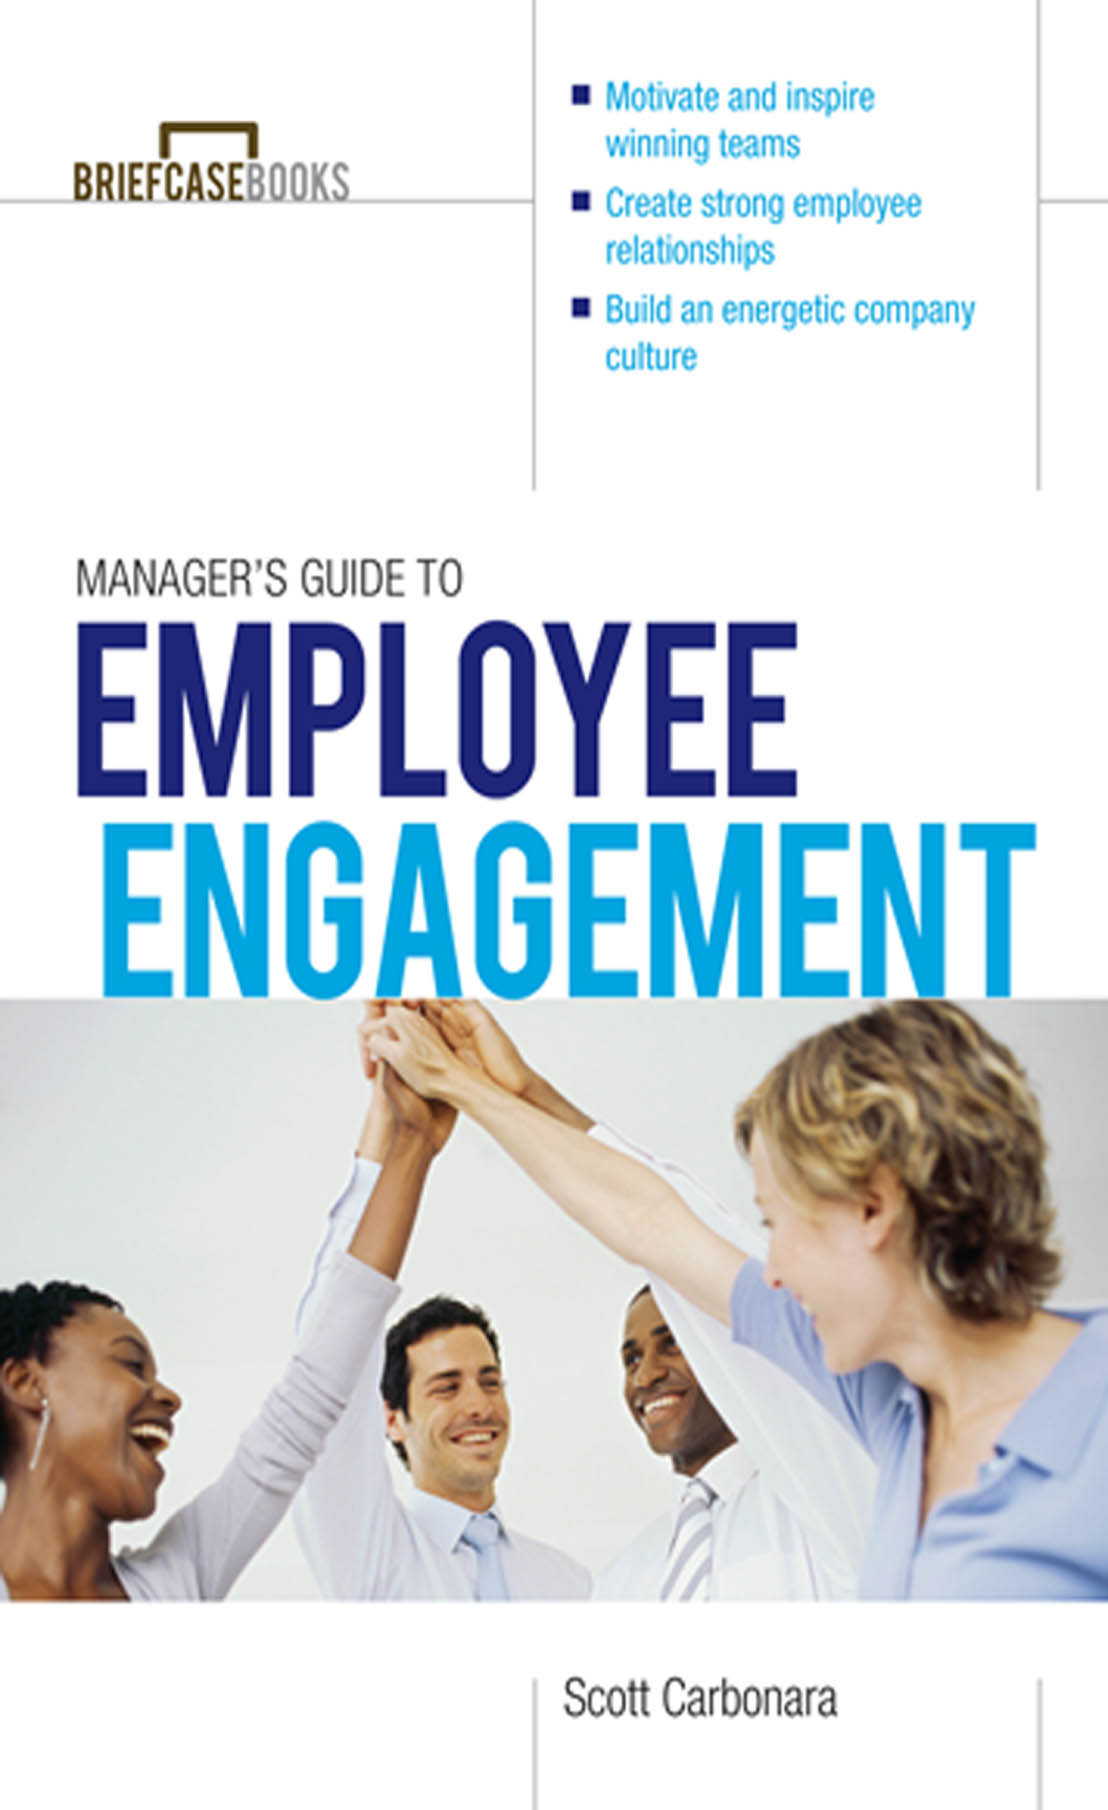 Download Ebook Manager's Guide to Employee Engagement by Scott Carbonara Pdf